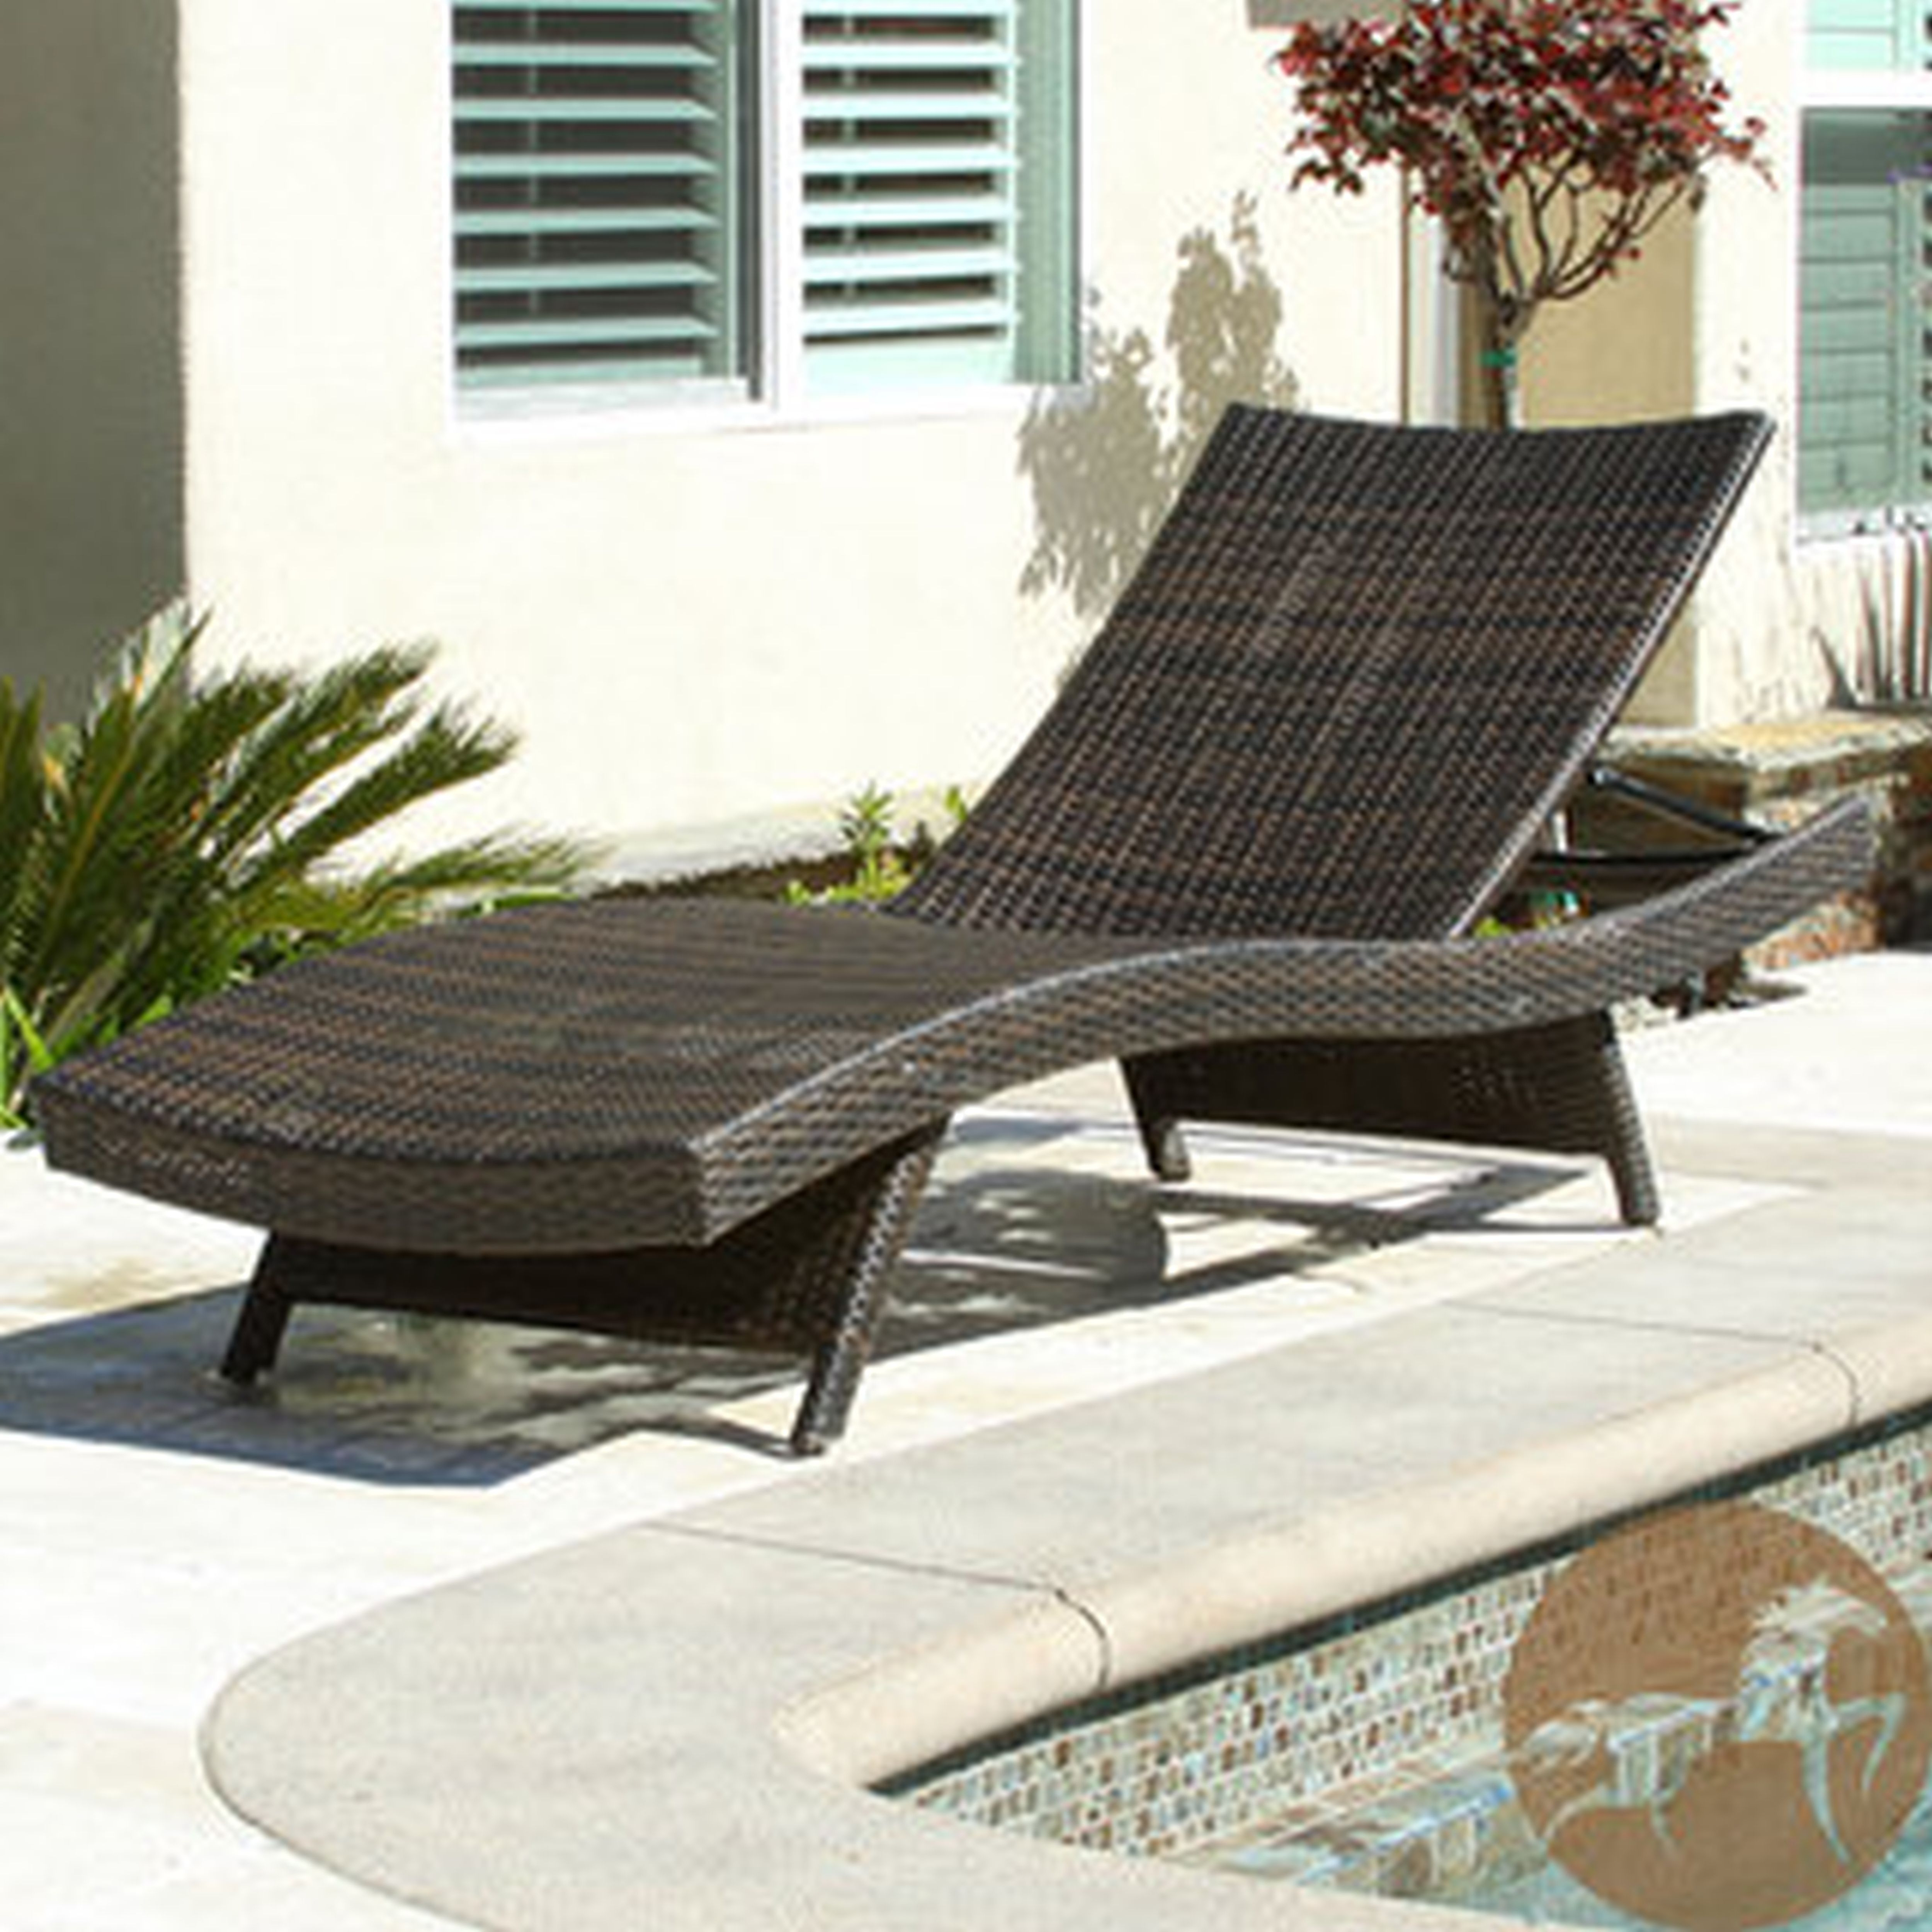 Latest Chaise Lounge Chairs At Lowes Inside Furniture: All Weather Wicker Patio Furniture Design With Lowes (View 10 of 15)